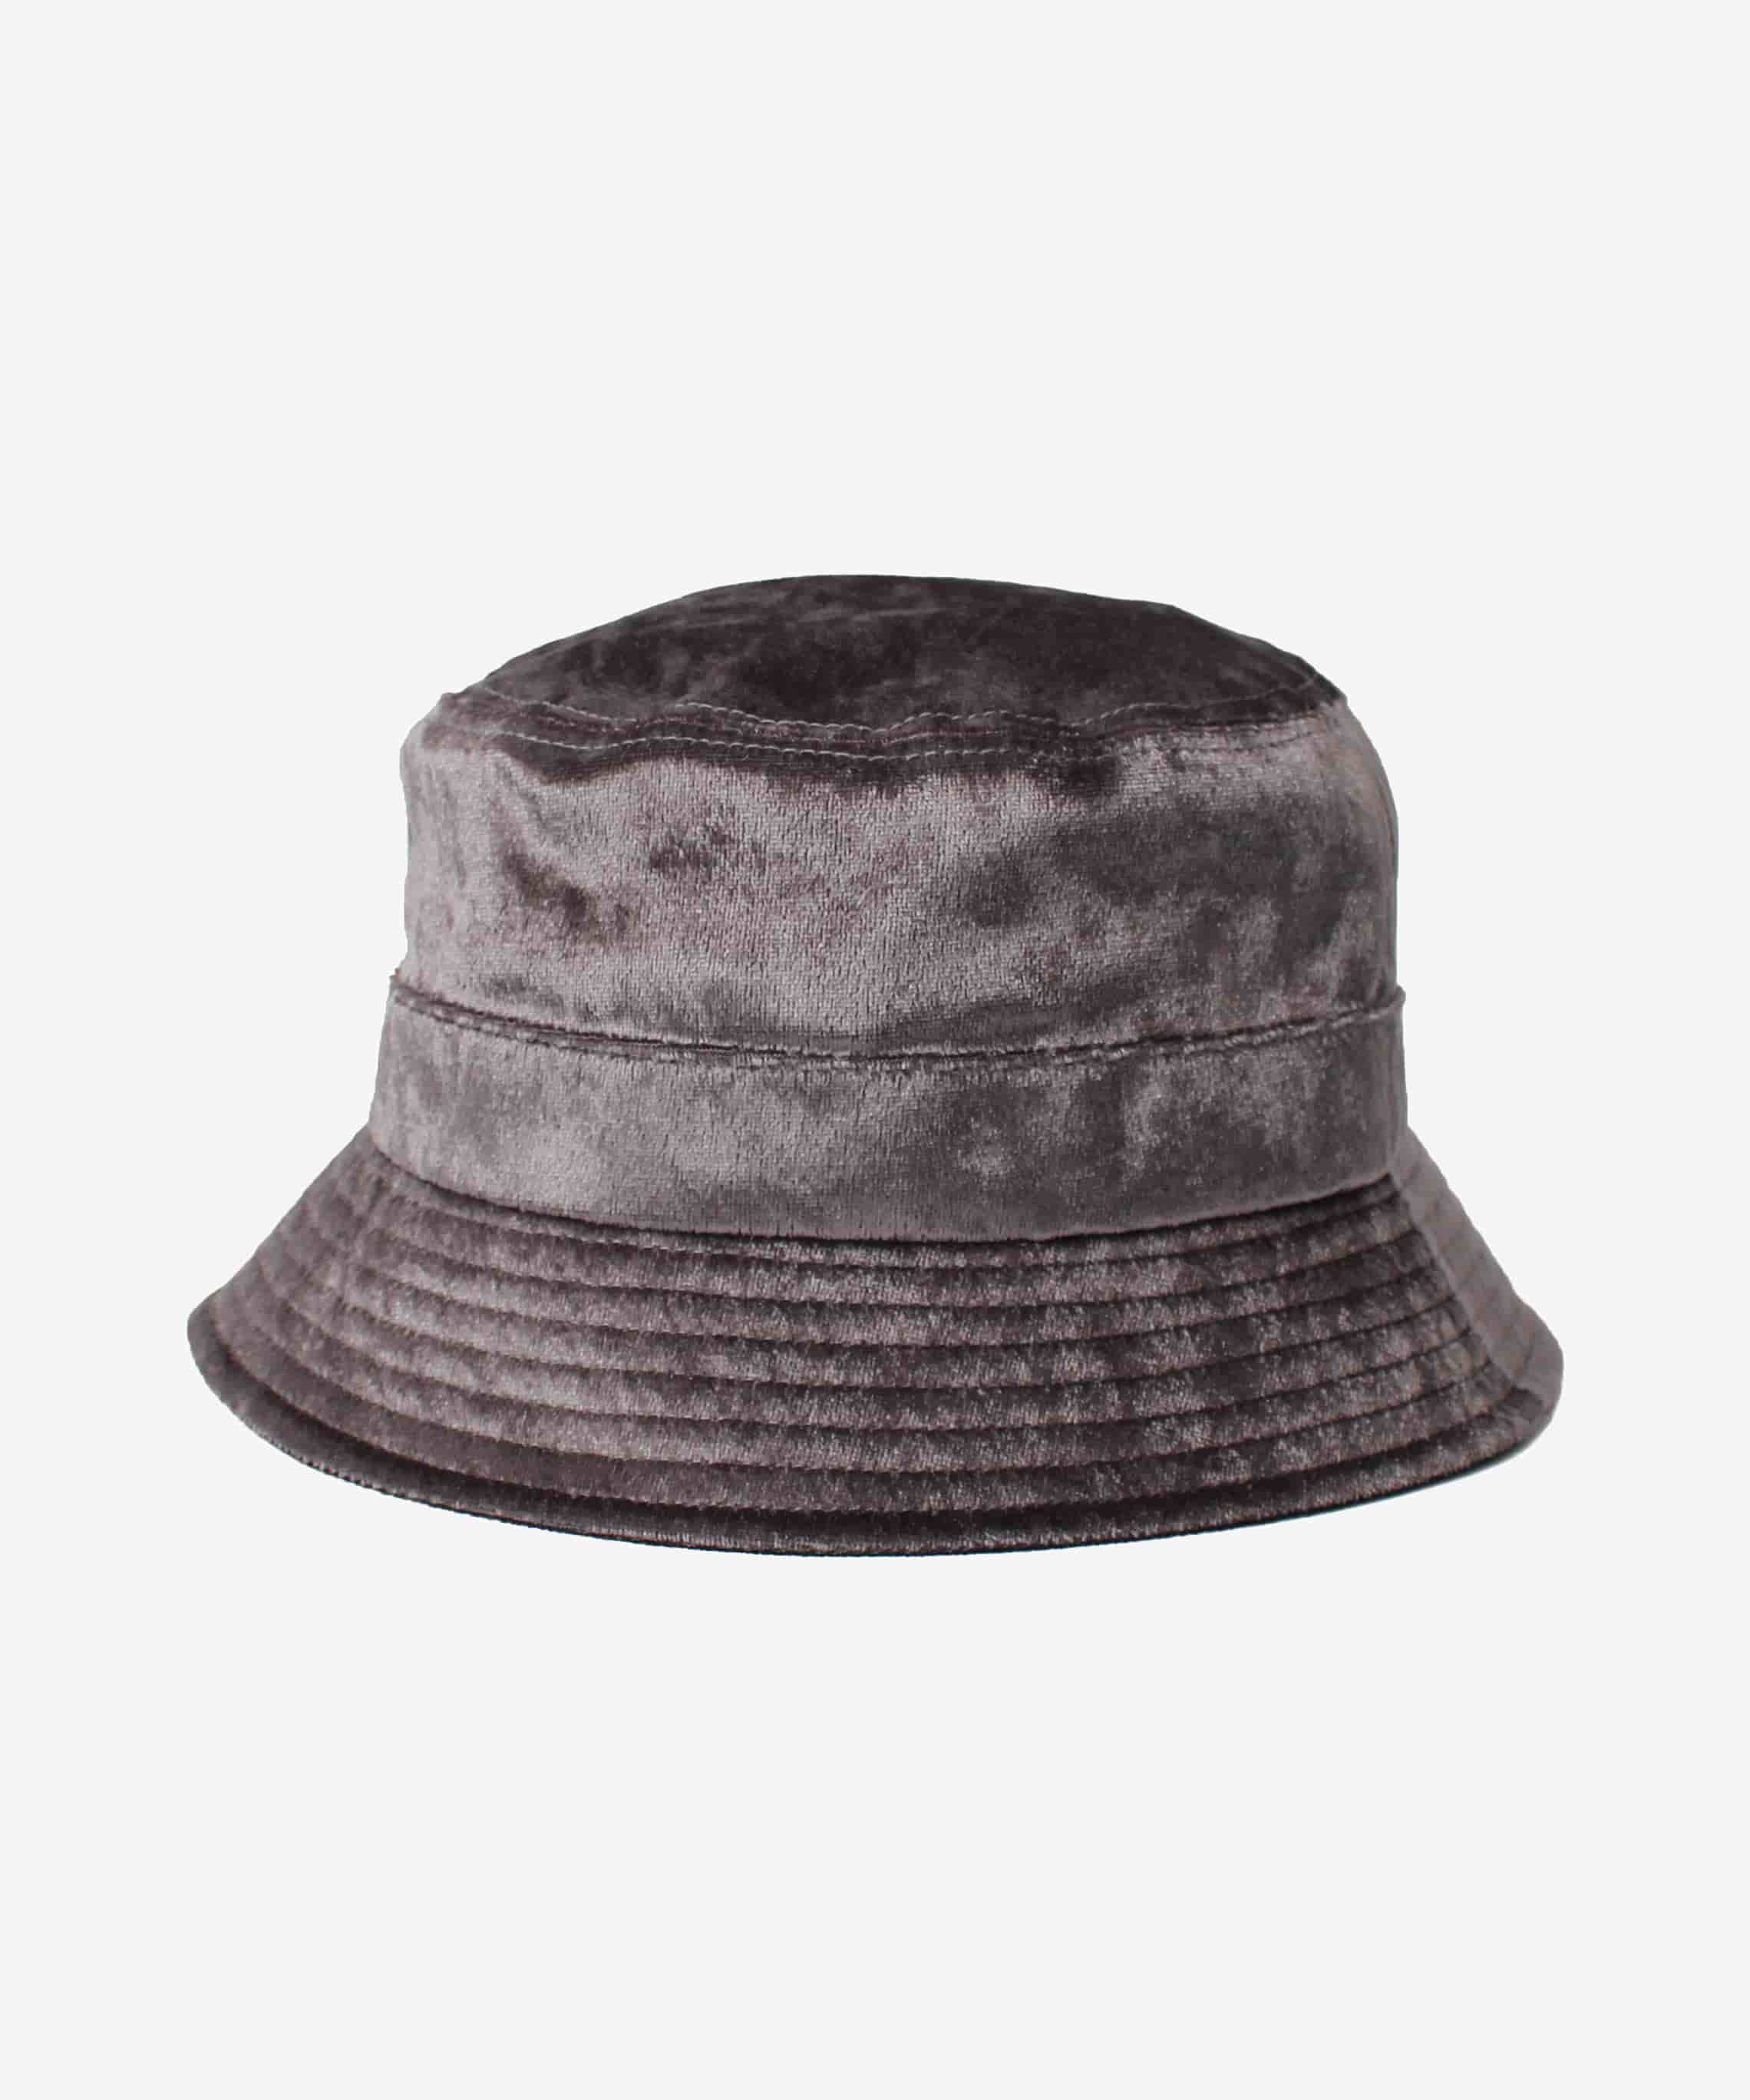 【☆】NEEDLES Bucket Hat Crush Velour